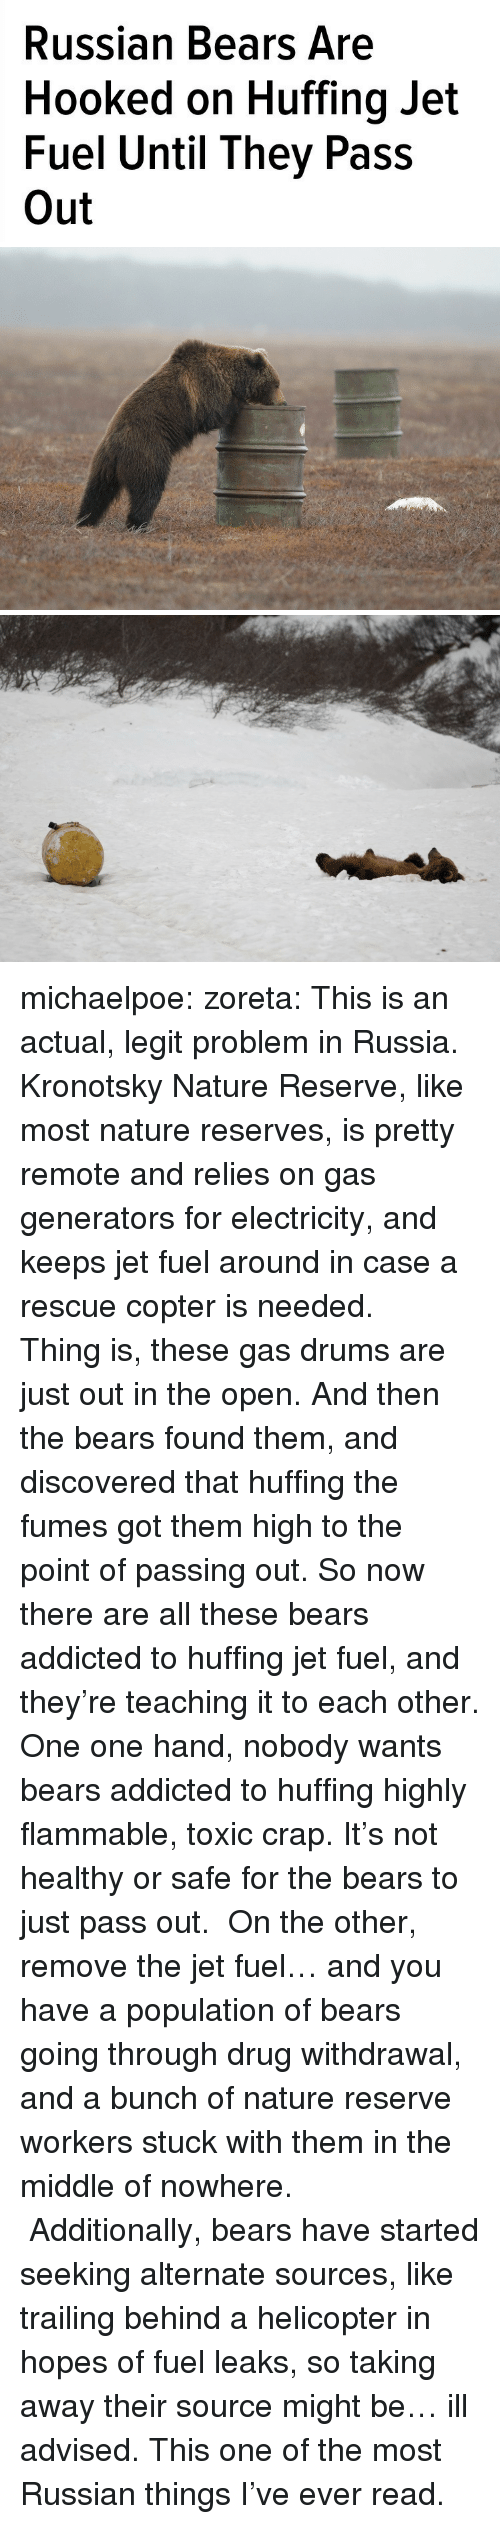 Tumblr, Addicted, and Bears: Russian Bears Are  Hooked on Huffing Jet  Fuel Until They Pass  Out michaelpoe: zoreta:  This is an actual, legit problem in Russia.    Kronotsky Nature Reserve, like most nature reserves, is pretty remote and relies on gas generators for electricity, and keeps jet fuel around in case a rescue copter is needed.    Thing is, these gas drums are just out in the open. And then the bears found them, and discovered that huffing the fumes got them high to the point of passing out. So now there are all these bears addicted to huffing jet fuel, and they're teaching it to each other.  One one hand, nobody wants bears addicted to huffing highly flammable, toxic crap. It's not healthy or safe for the bears to just pass out.  On the other, remove the jet fuel… and you have a population of bears going through drug withdrawal, and a bunch of nature reserve workers stuck with them in the middle of nowhere.  Additionally, bears have started seeking alternate sources, like trailing behind a helicopter in hopes of fuel leaks, so taking away their source might be… ill advised.     This one of the most Russian things I've ever read.